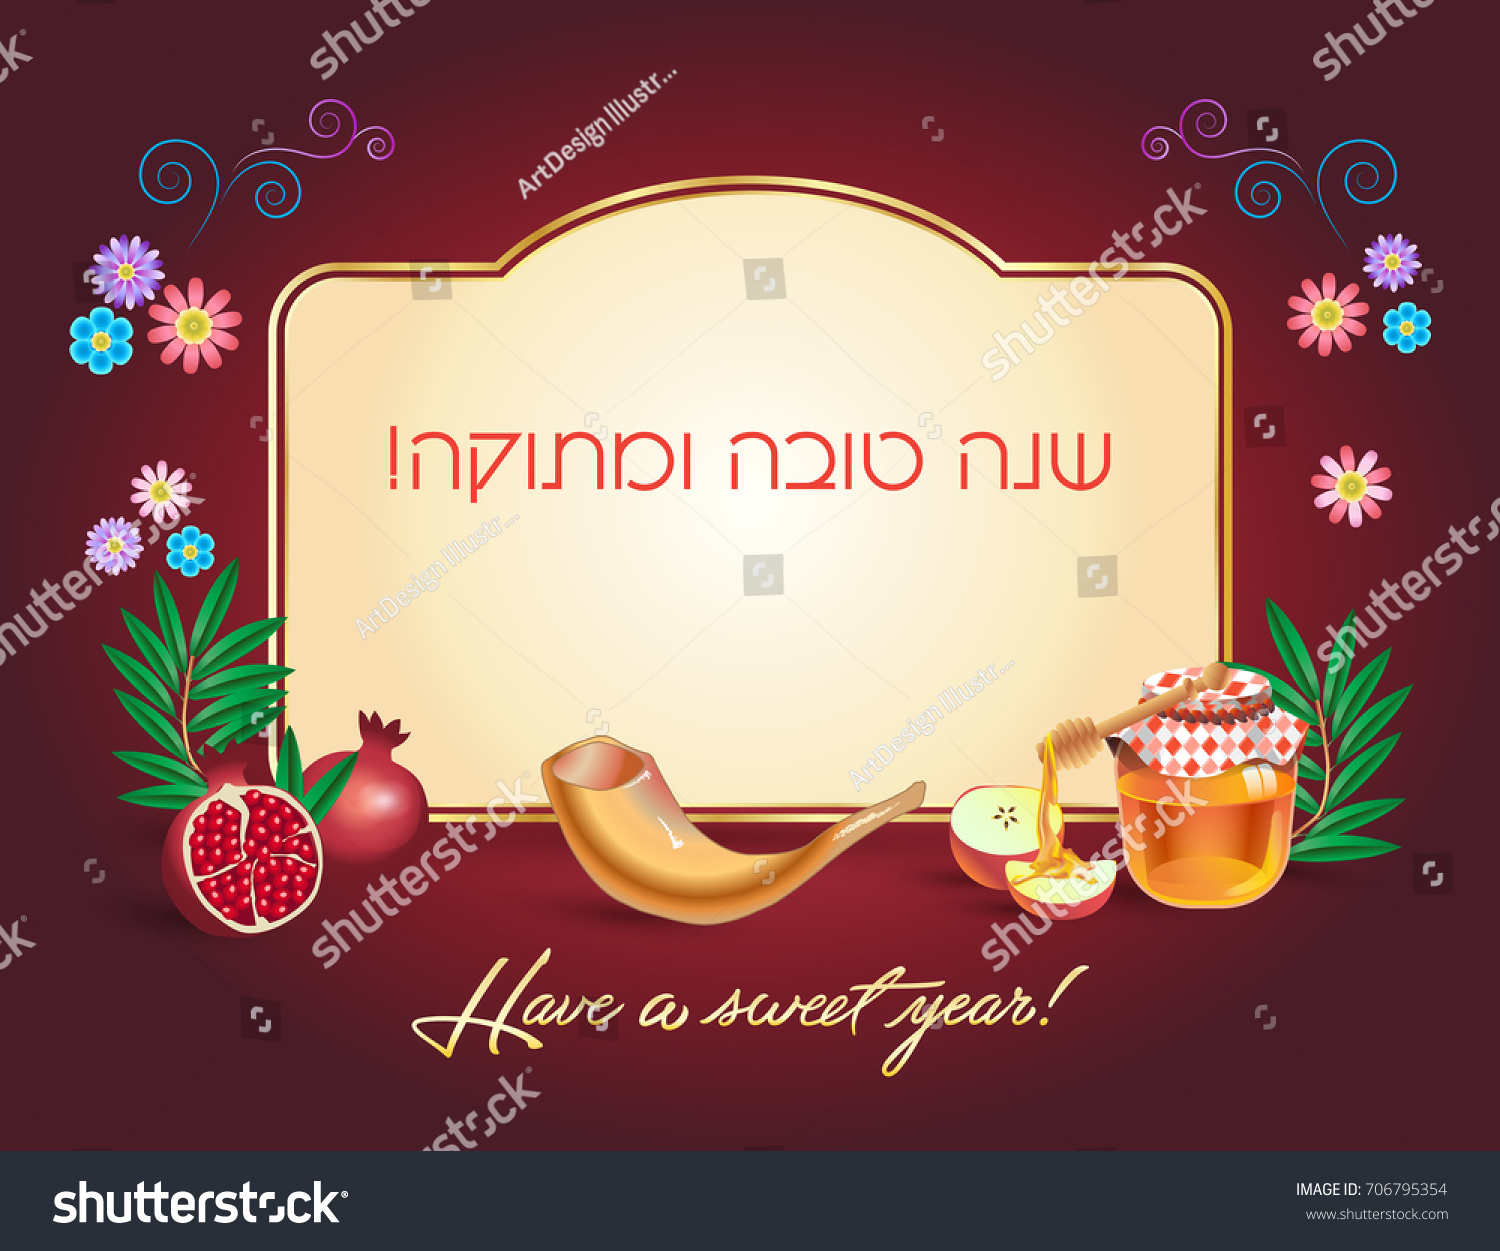 Happy new year rosh hashanah greeting stock vector royalty free rosh hashanah greeting card jewish new year text shana m4hsunfo